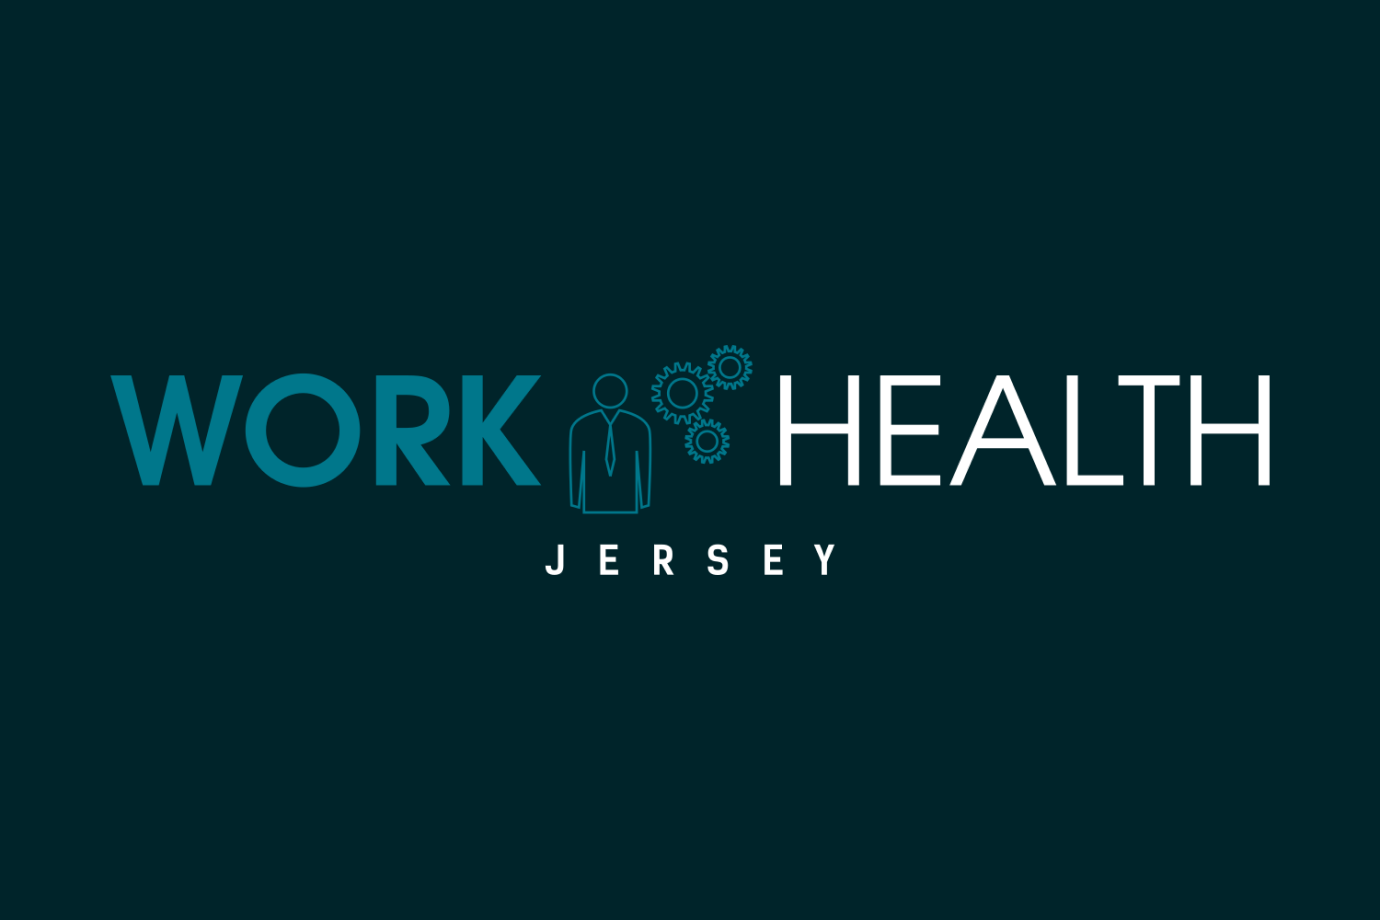 WorkHealth Jersey